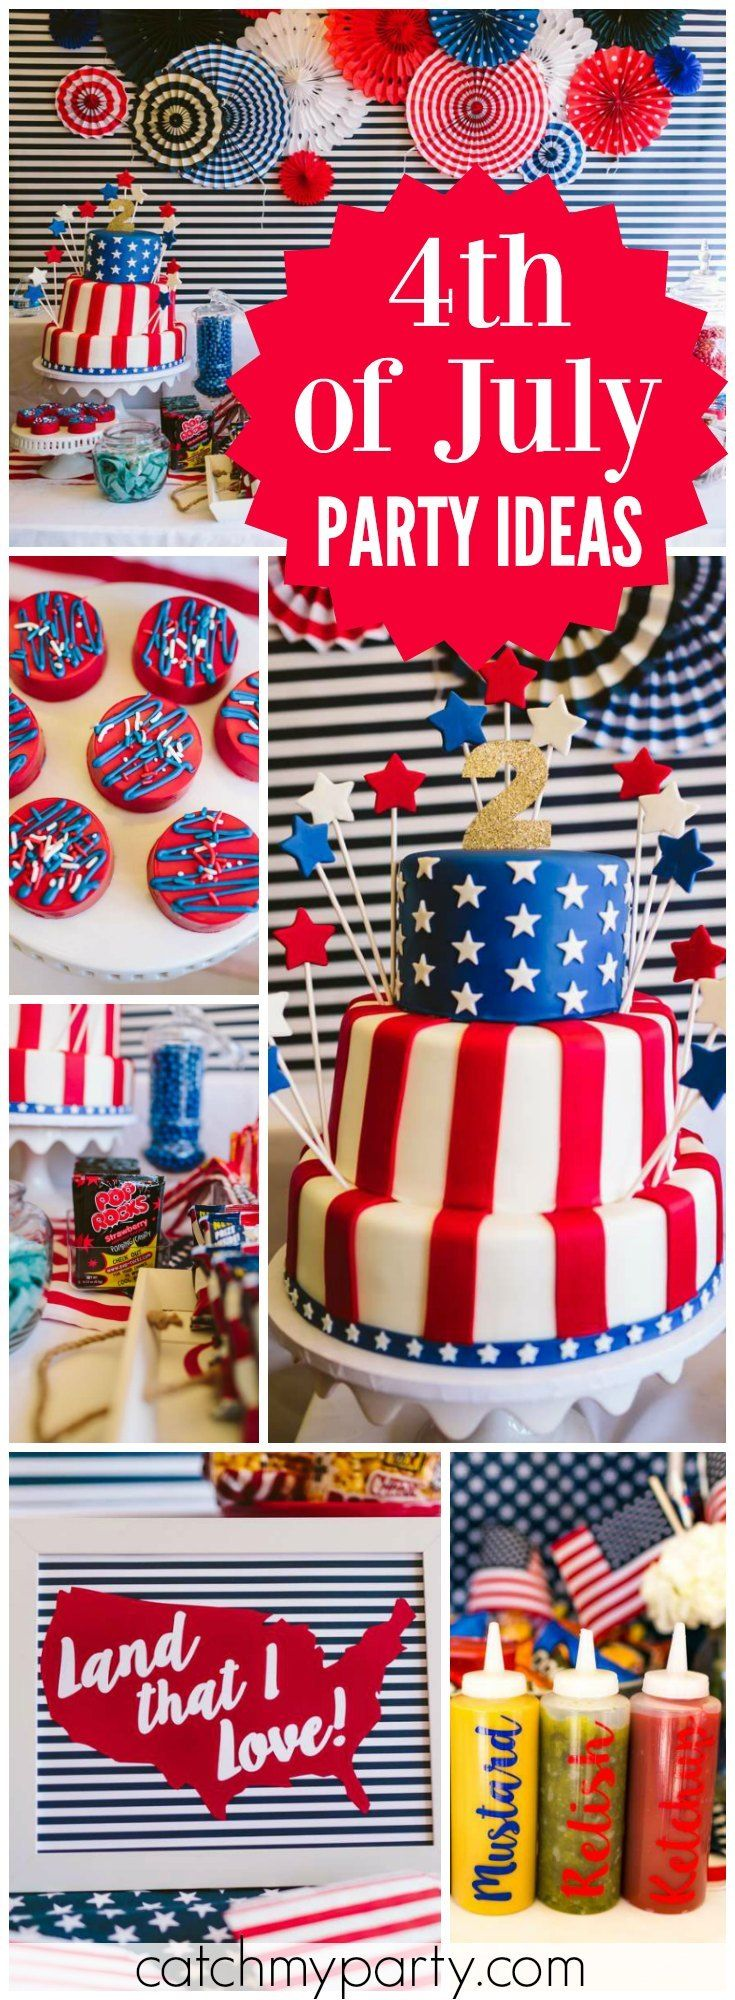 Wow! What a fantastic red, white and blue 4th of July birthday party! See more party ideas at Catchmyparty.com!